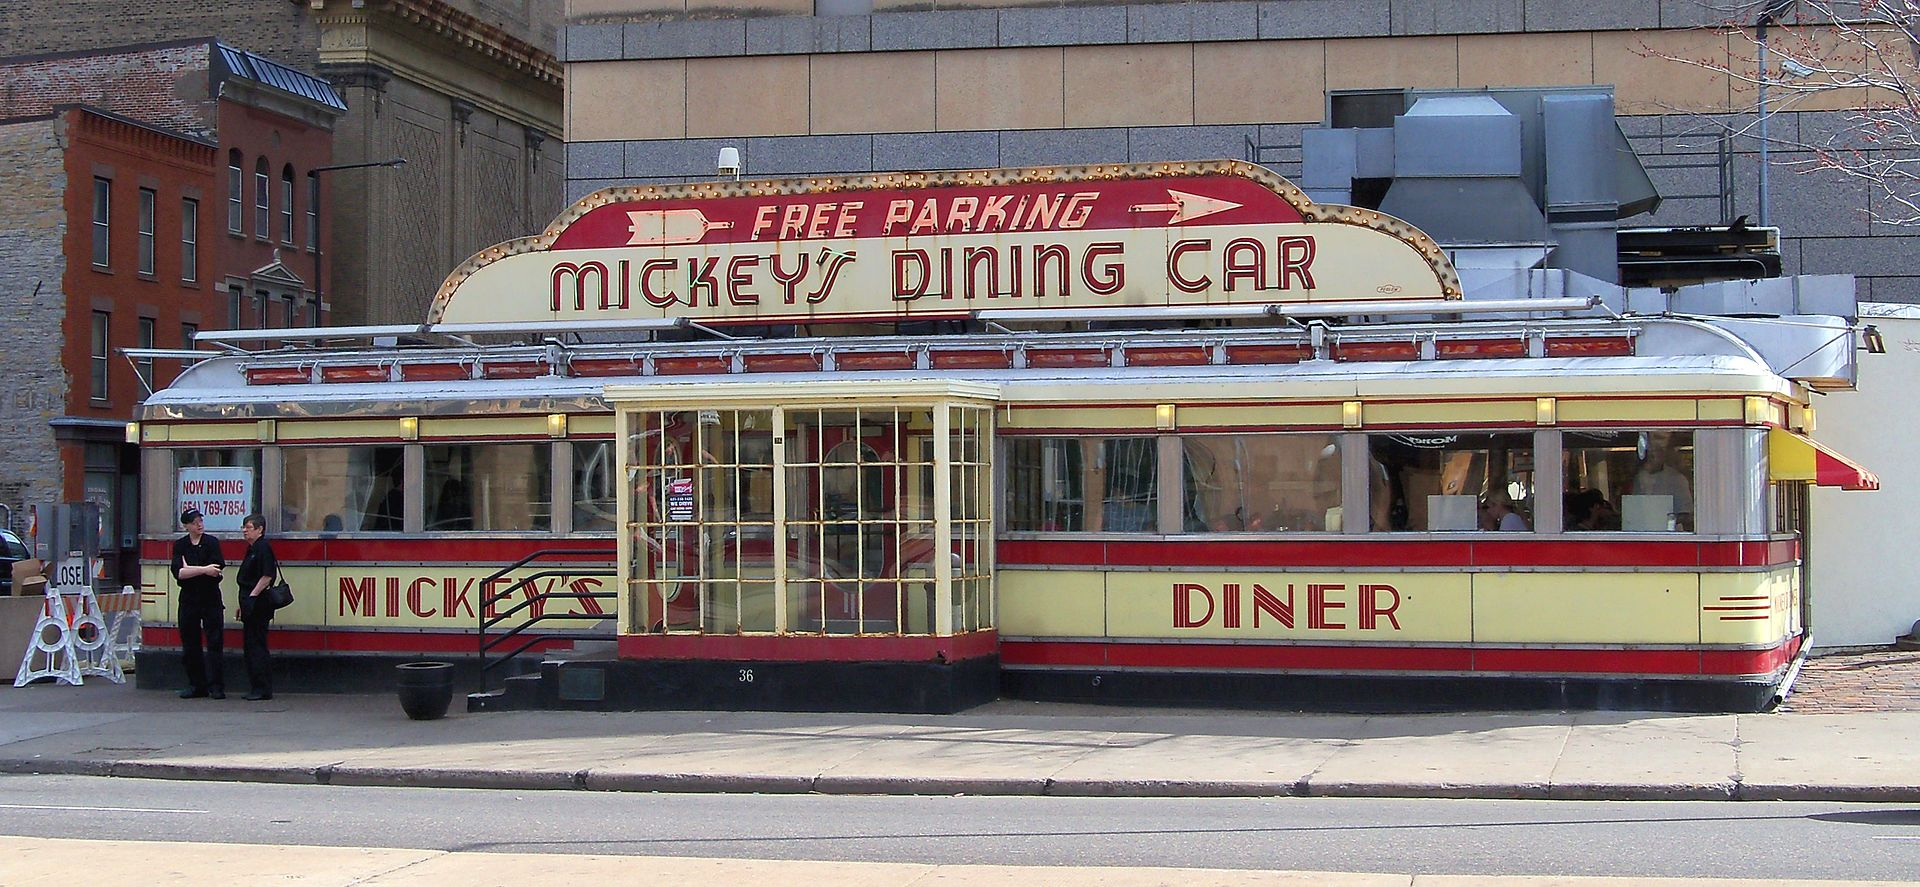 Mickey's Diner arrived in St. Paul in 1939 and has been open every day, 24 hours a day, ever since.